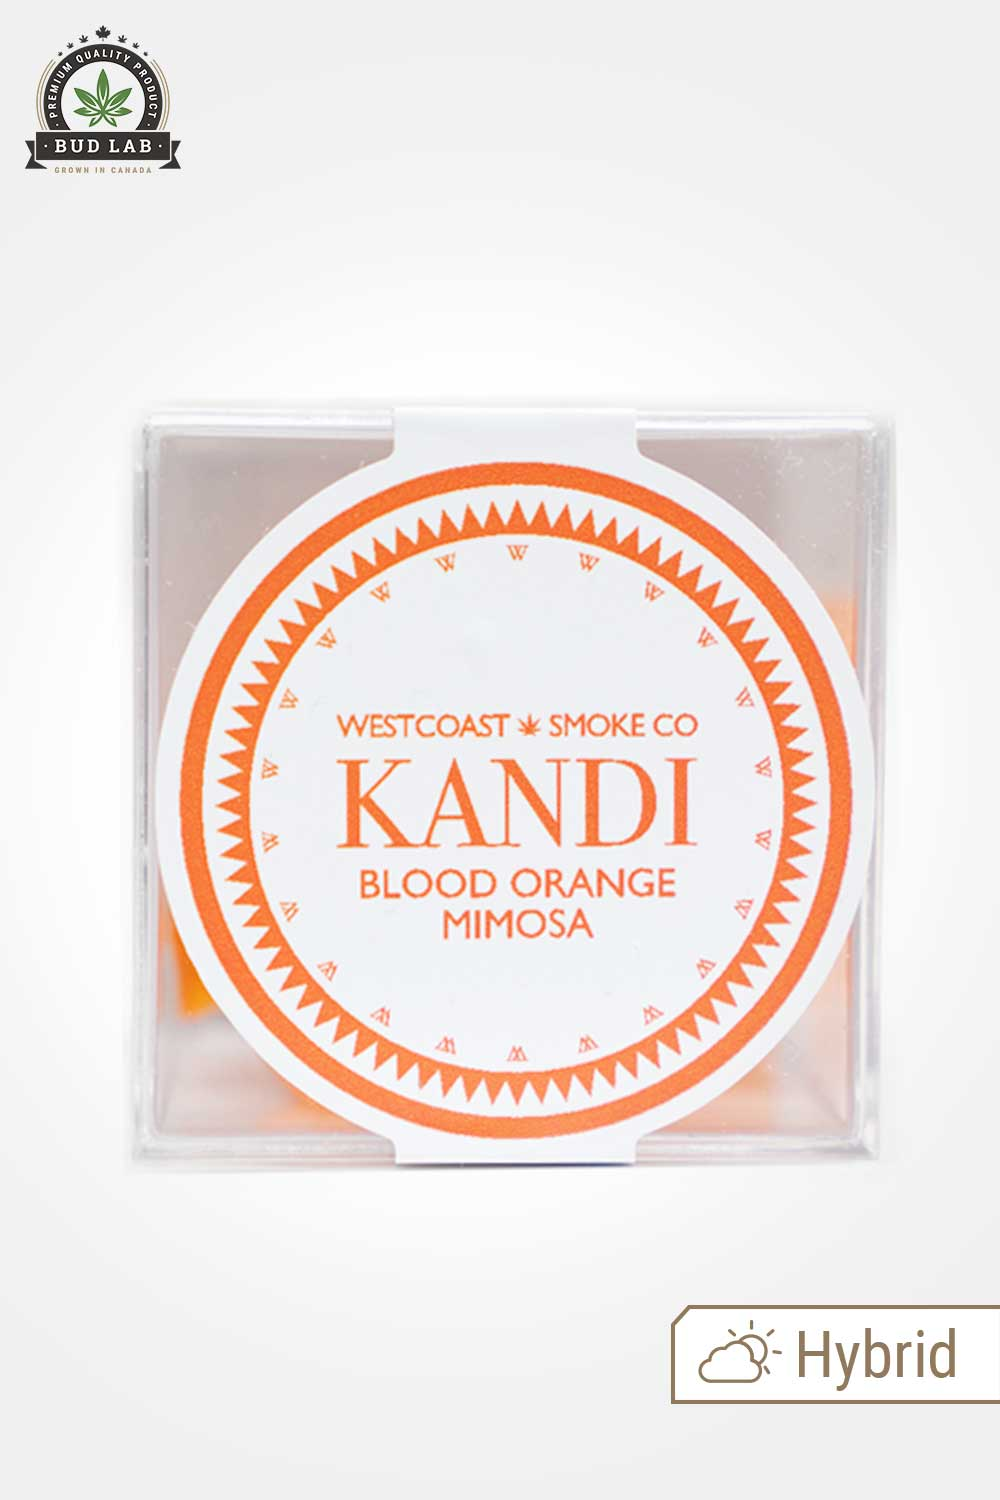 Westcoast Smoke Co Kandi Blood Orange Mimosa